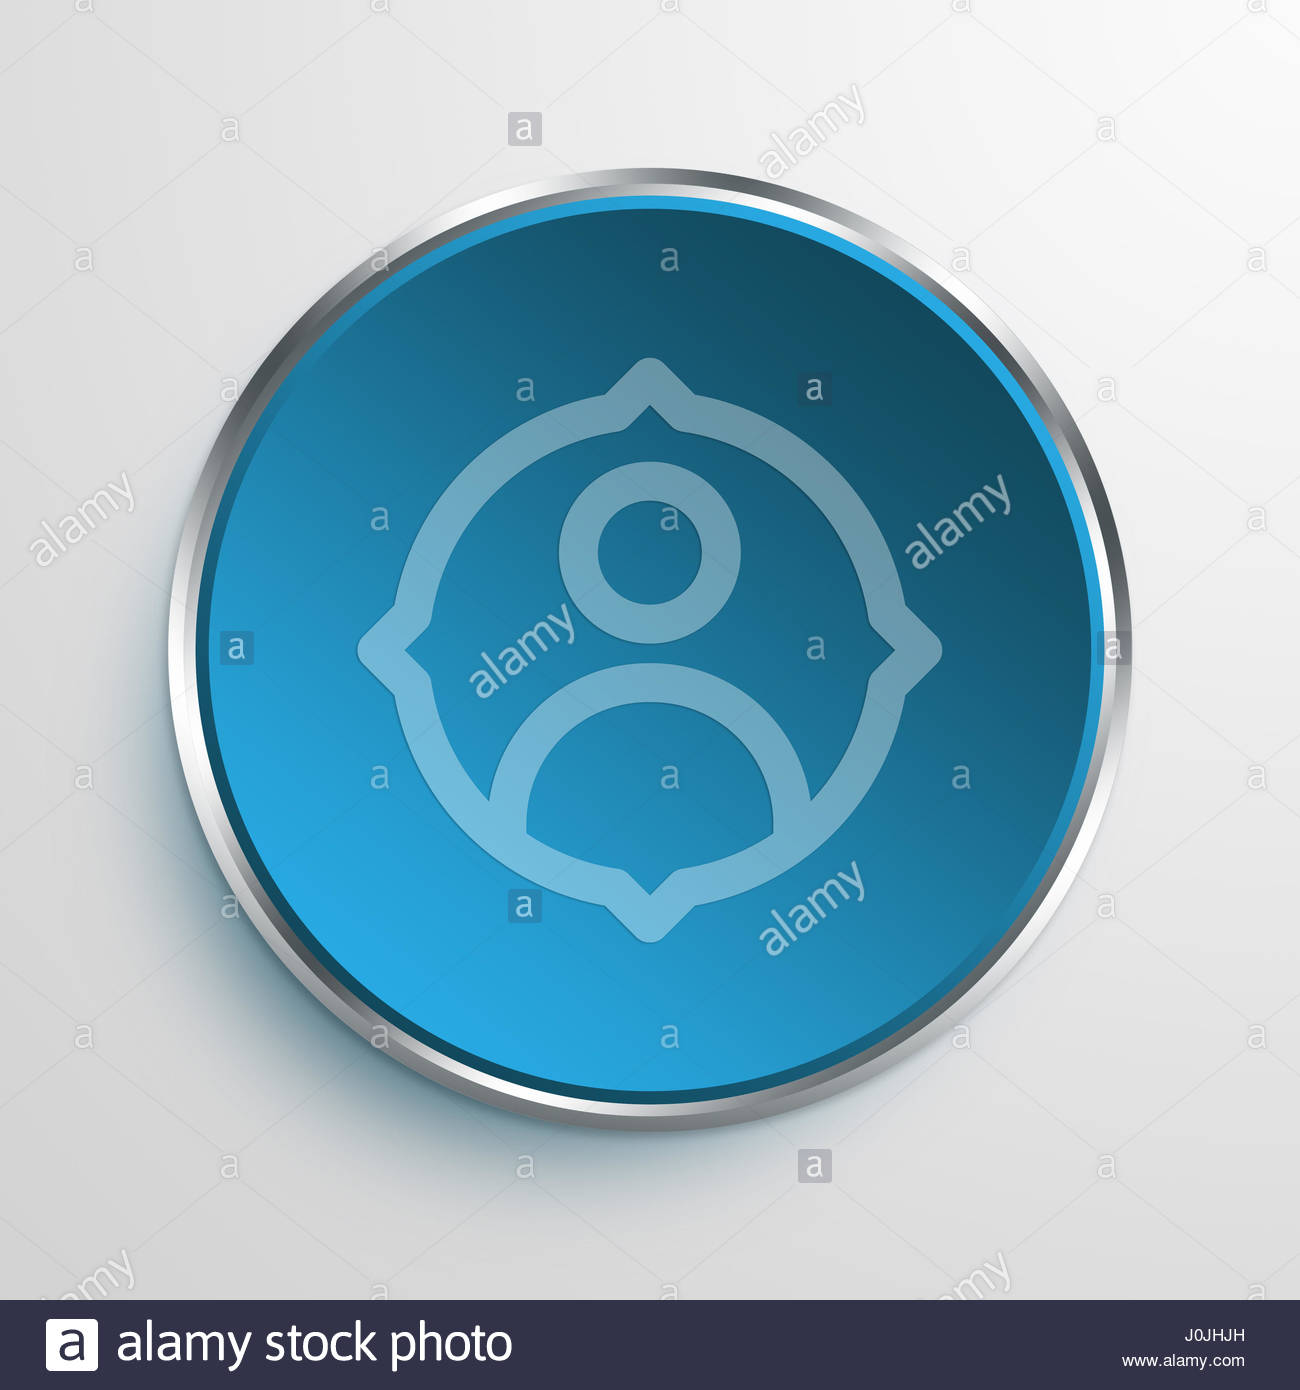 Blue sign business target symbol icon business concept no5264 blue sign business target symbol icon business concept no5264 buycottarizona Image collections